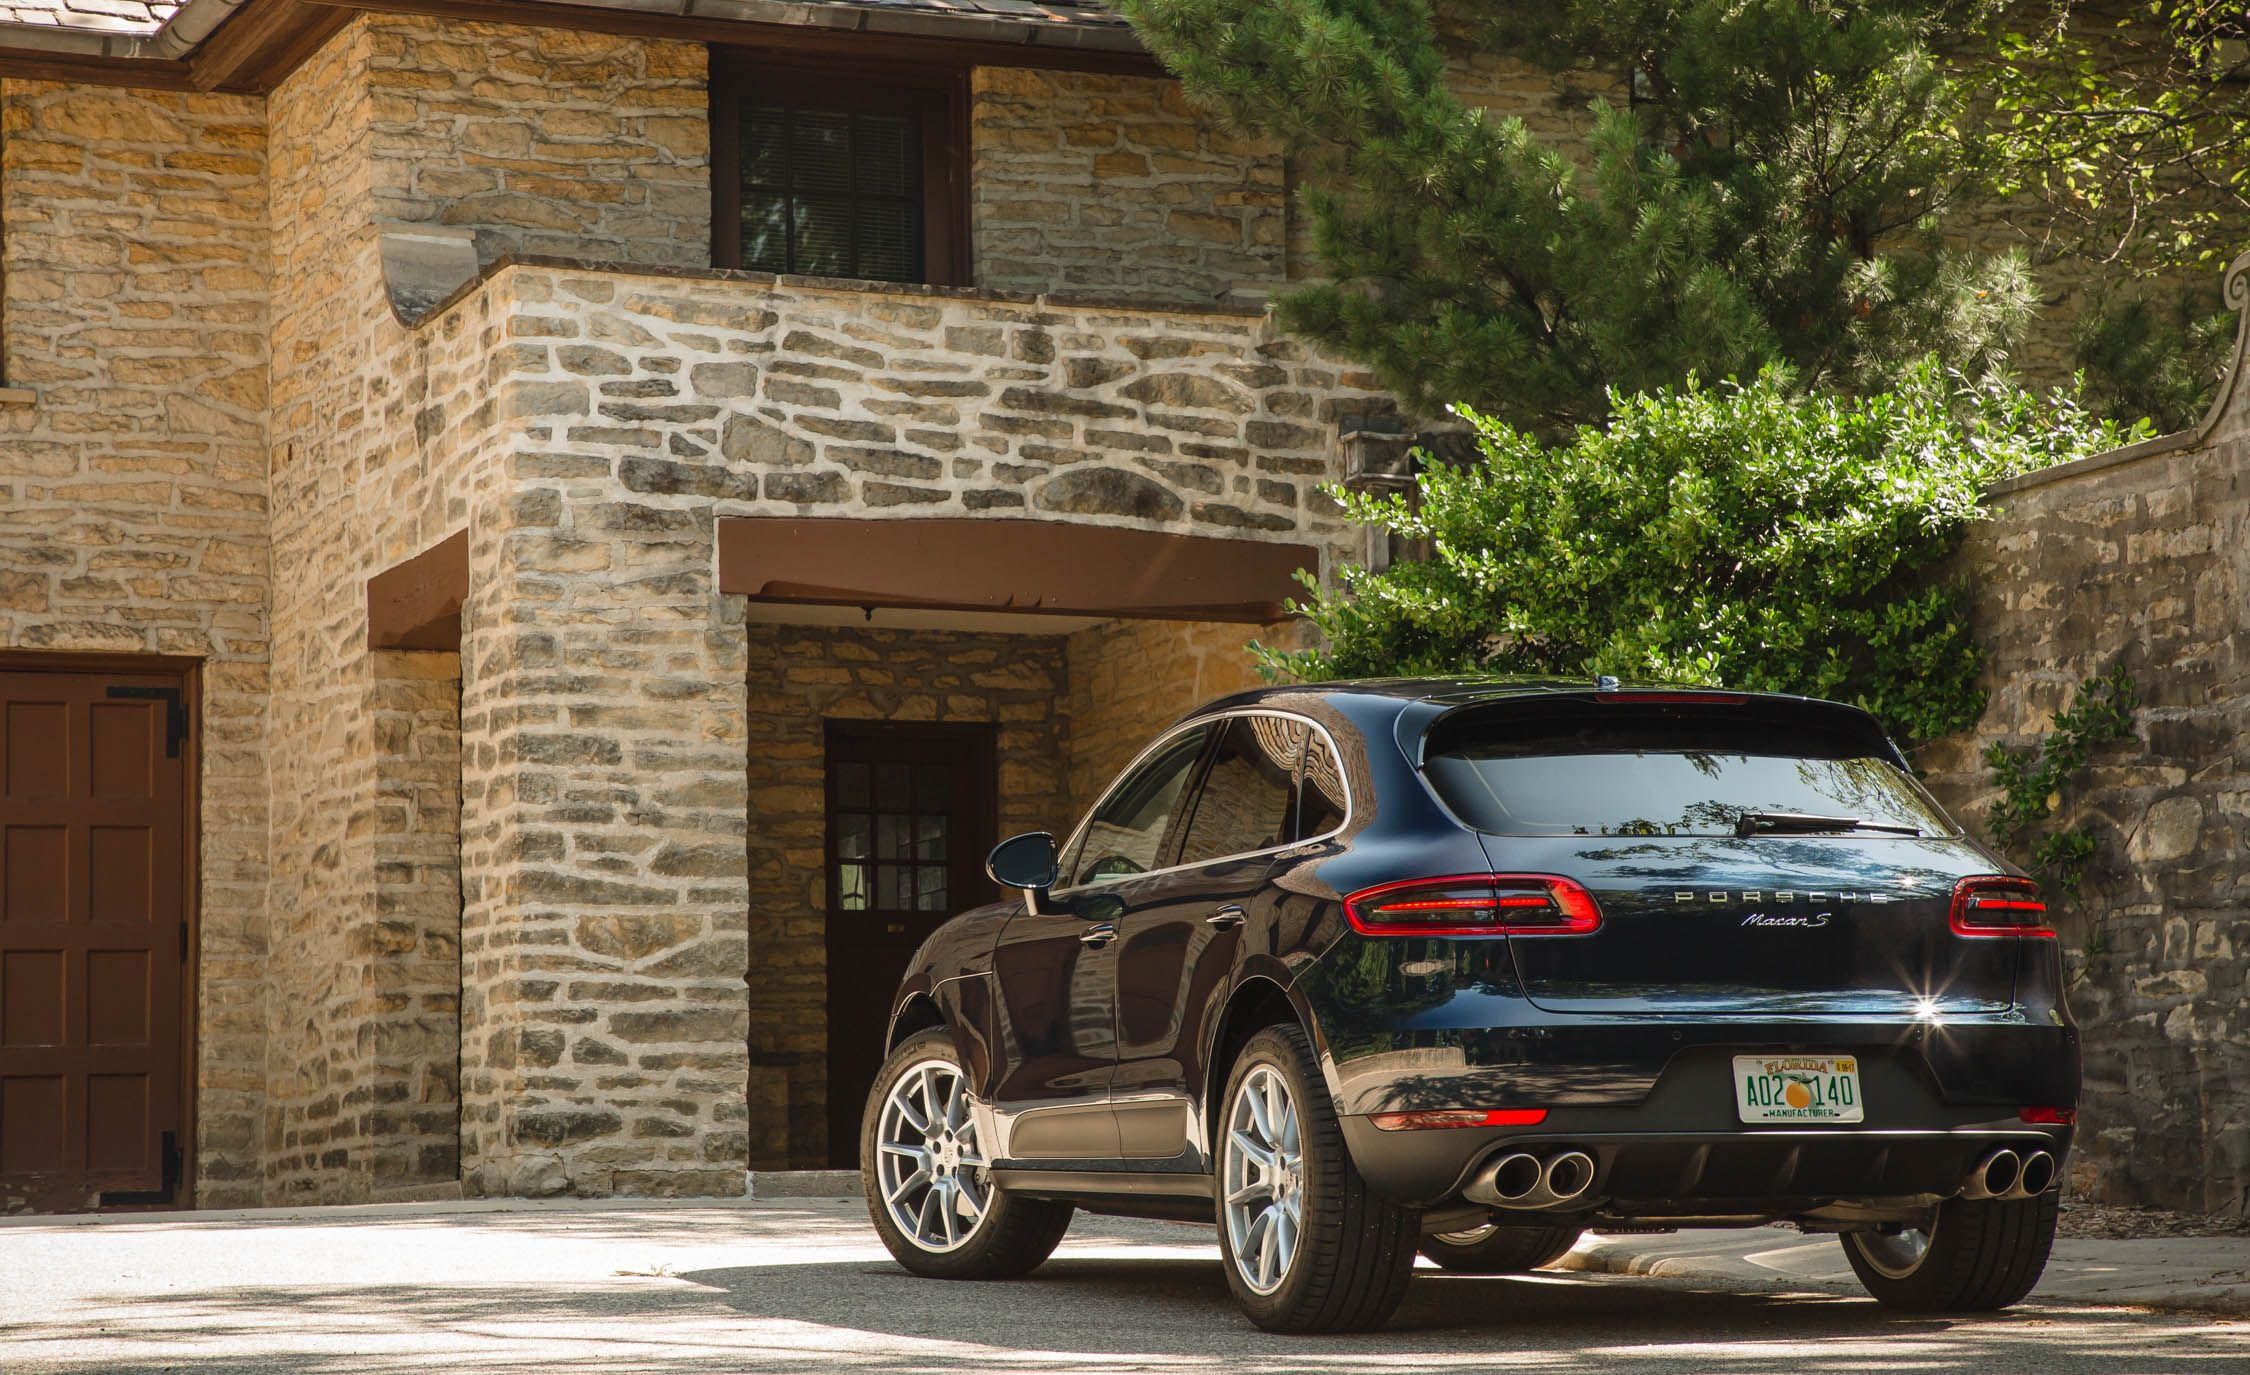 2017 Porsche Macan Cargo Space And Storage Review Car And Driver